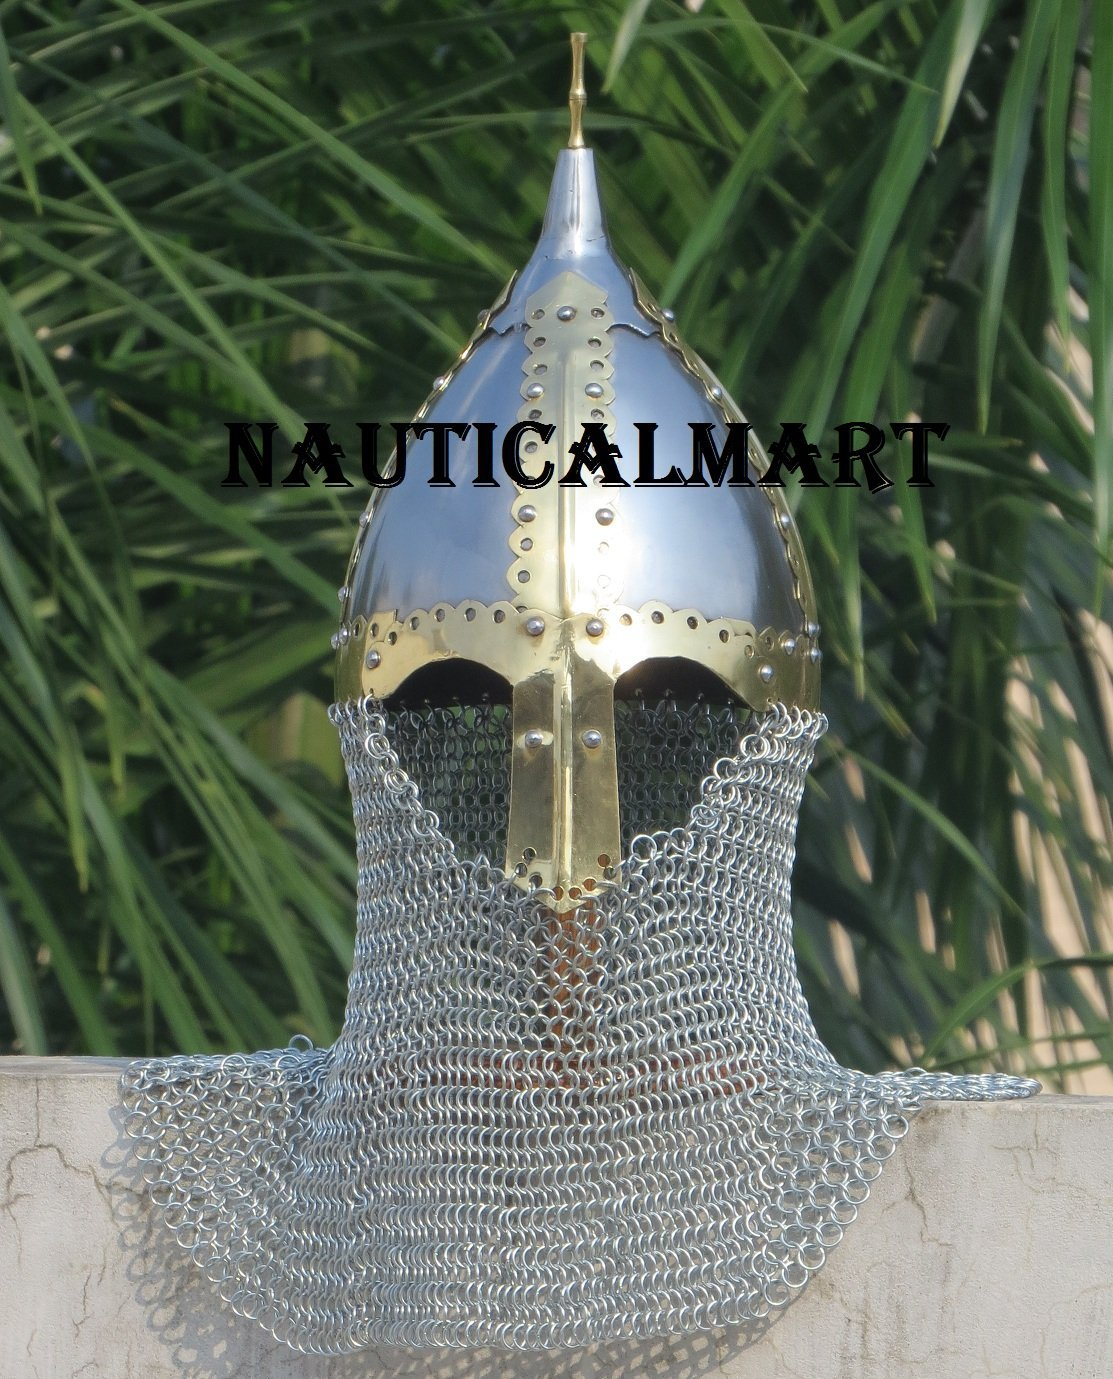 Chest Guards Chainmail Hub MEDIEVAL MONARCH KNIGHT King Richard Lionheart Two Tone CROWN HELMET ARMOR Team Sports